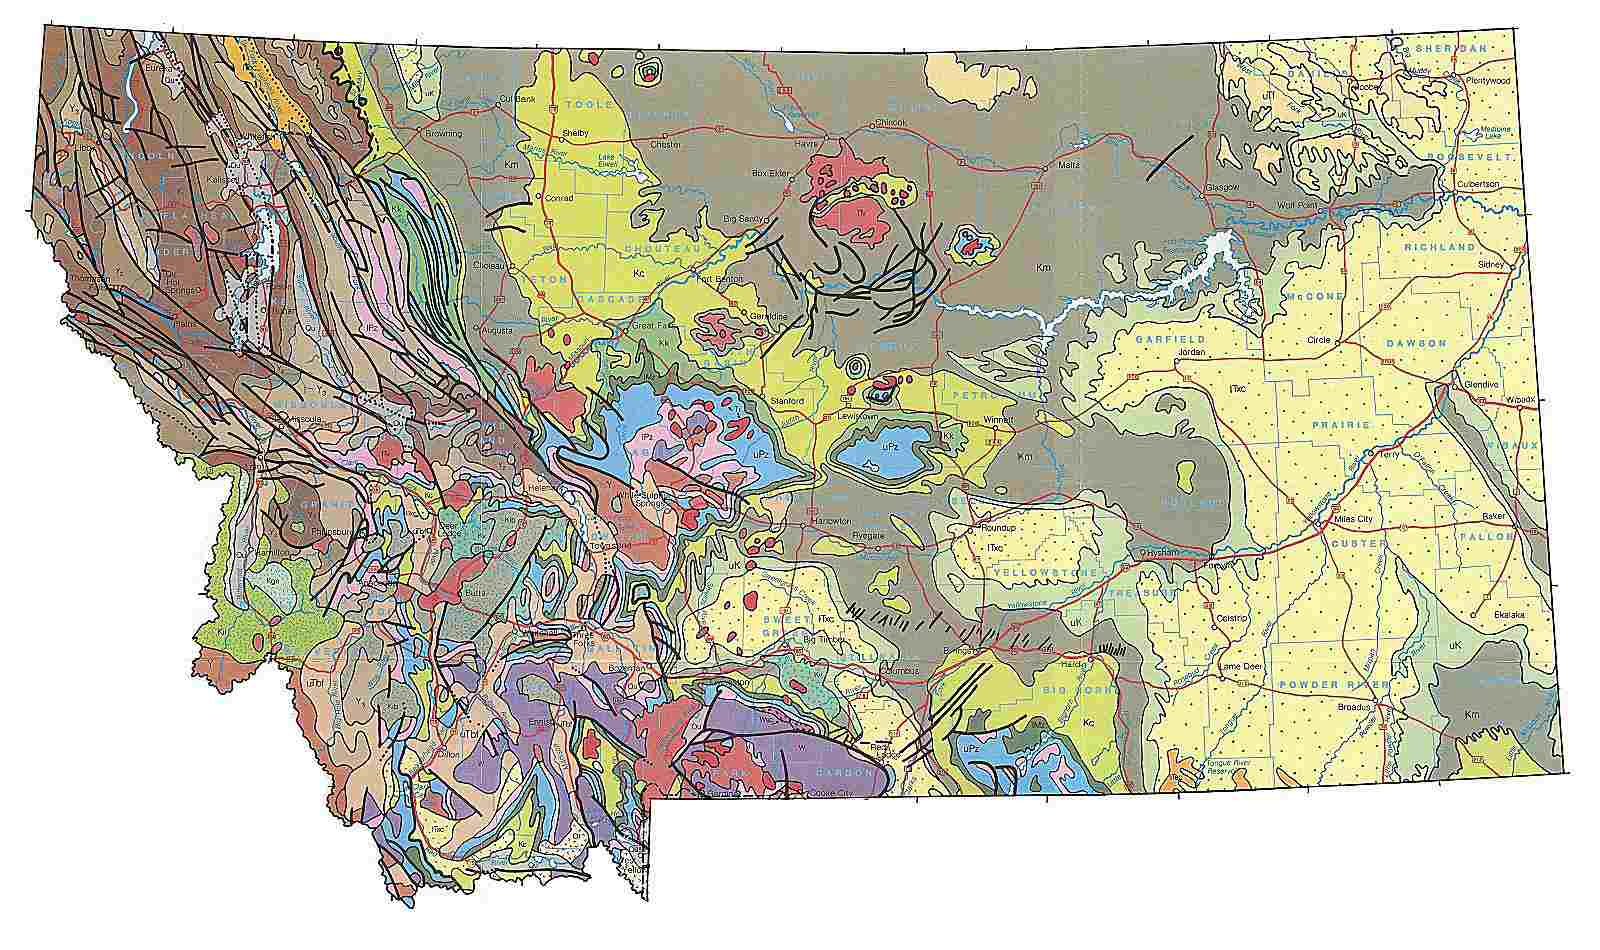 Geologic Maps of the 50 United States on philadelphia geology map, pacific northwest geology map, russia geology map, north america geology map, new zealand geology map, delaware geology map, u.s. geological map, italy geology map, virginia geology map, white sands geology map, yosemite national park geology map, washington geology map, indiana geology map, manhattan geology map, university of cincinnati geology map, west texas geology map, new york state geology map, south dakota geology map, united states geological survey maps, new hampshire geology map,